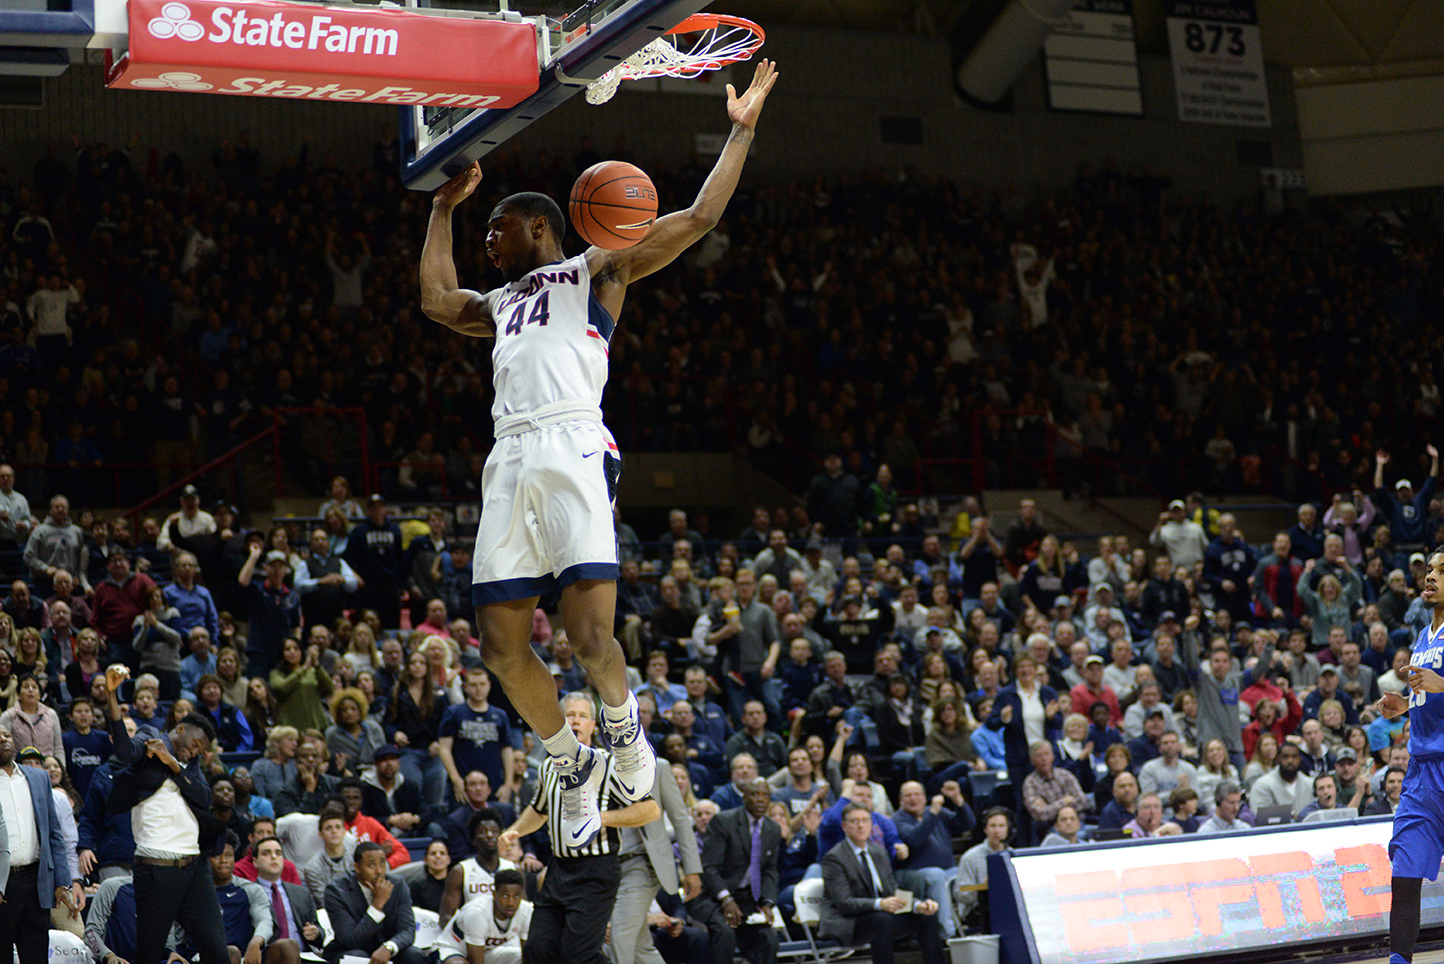 Guard Rodney Purvis soars in for a dunk during UConn's 81-78 win over Memphis at Gampel Pavilion on Jan. 9, 2016. The Huskies will take on the Tigers on Thursday. (Ashley Maher/The Daily Campus)